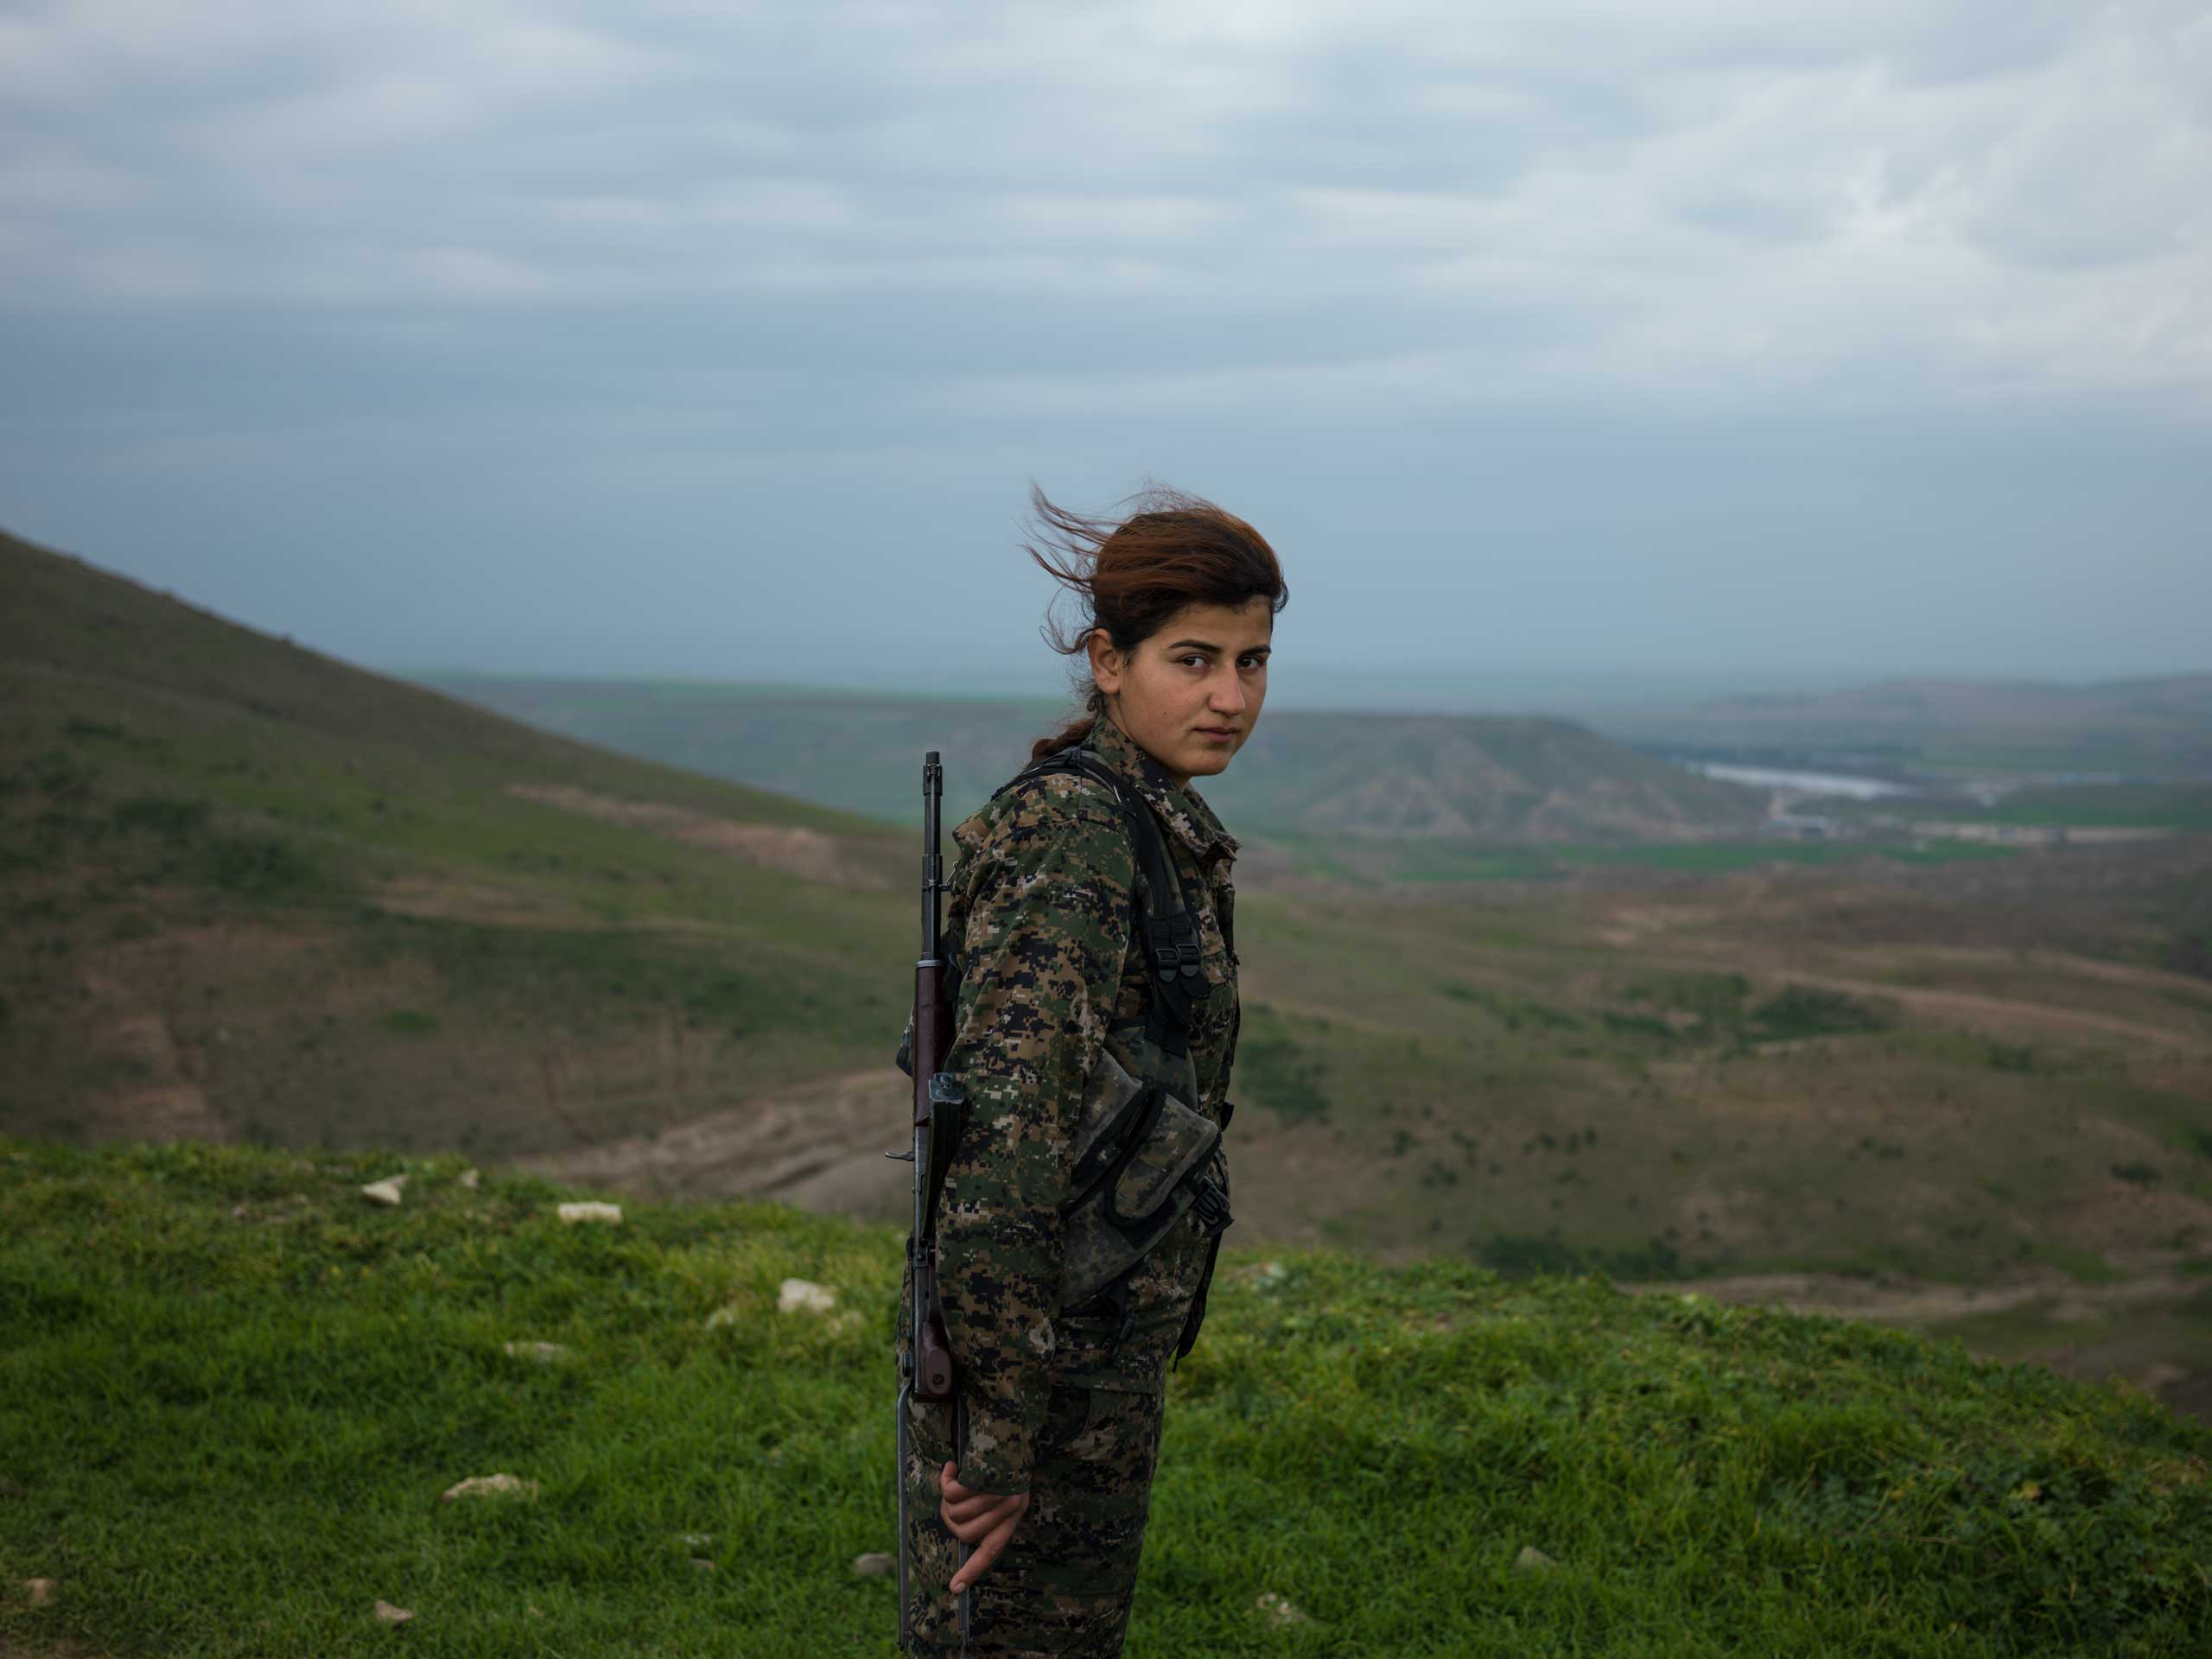 """TIME LightBox: The Women Taking the Battle to ISIS18-year-old YPJ (Women's Protection Unit) fighter Torin Khairegi: """"We live in                               a world where women are dominated by men.                               We are here to take control of our future. I injured an ISIS jihadi in Kobani. When he was wounded, all his friends left him behind and ran away. Later I went there and buried his body. I now feel that I am very powerful and can defend my home, my friends, my country, and myself. Many of us have been martyred and I see no path other than the continuation of their path."""